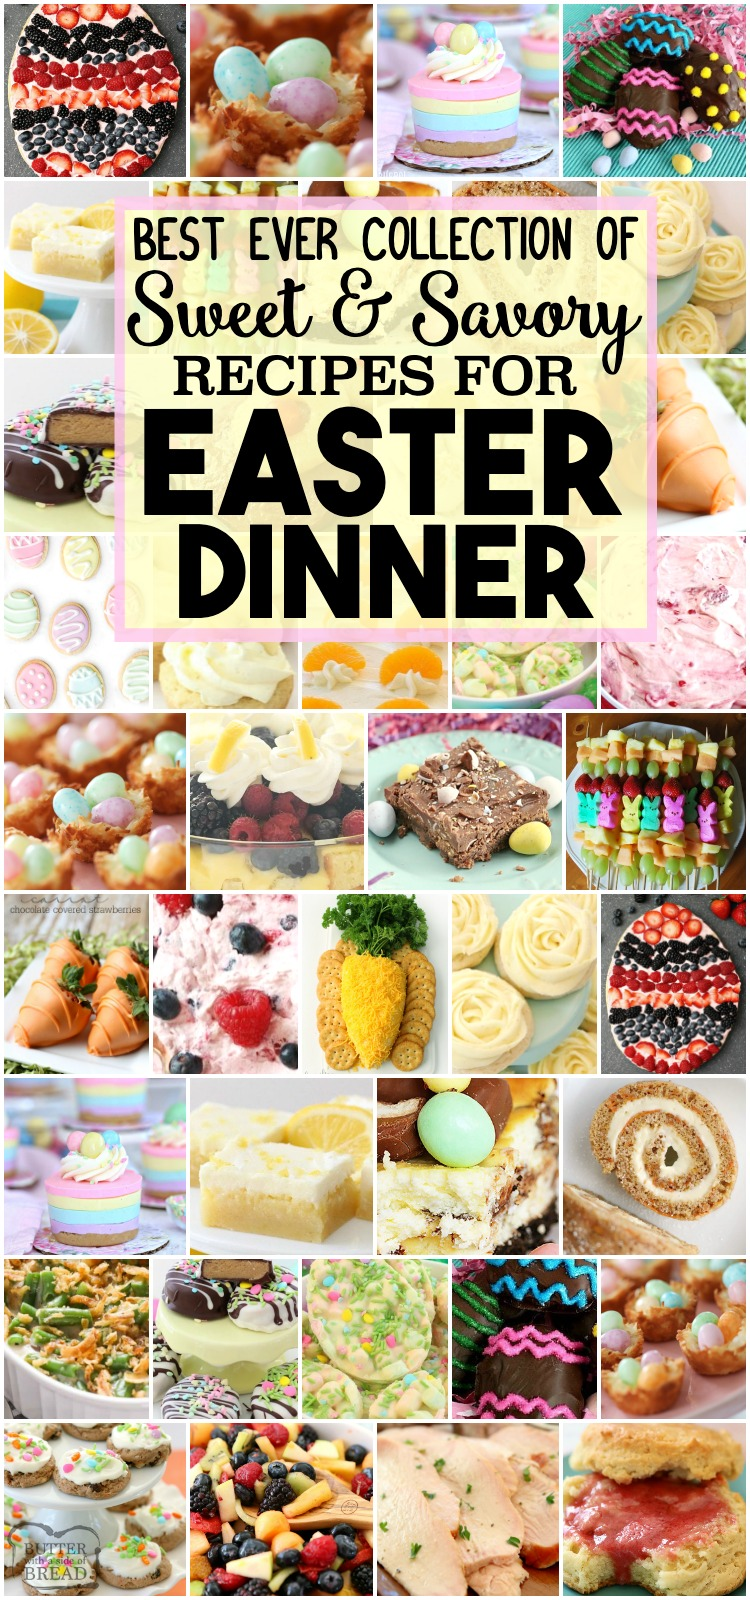 Best Easter Dinner Recipes: tried and true easy Easter Dinner Recipes with everything from slow cooker ham to Orange Cream Fruit Salad, Banana Cream Pie Cookies, Pecan Grape Salad and more. All the Easter dinner recipes you need for a delicious, festive holiday are here. #Easter #dinner #recipes #Spring #ham #fruitsalad #recipes from BUTTER WITH A SIDE OF BREAD